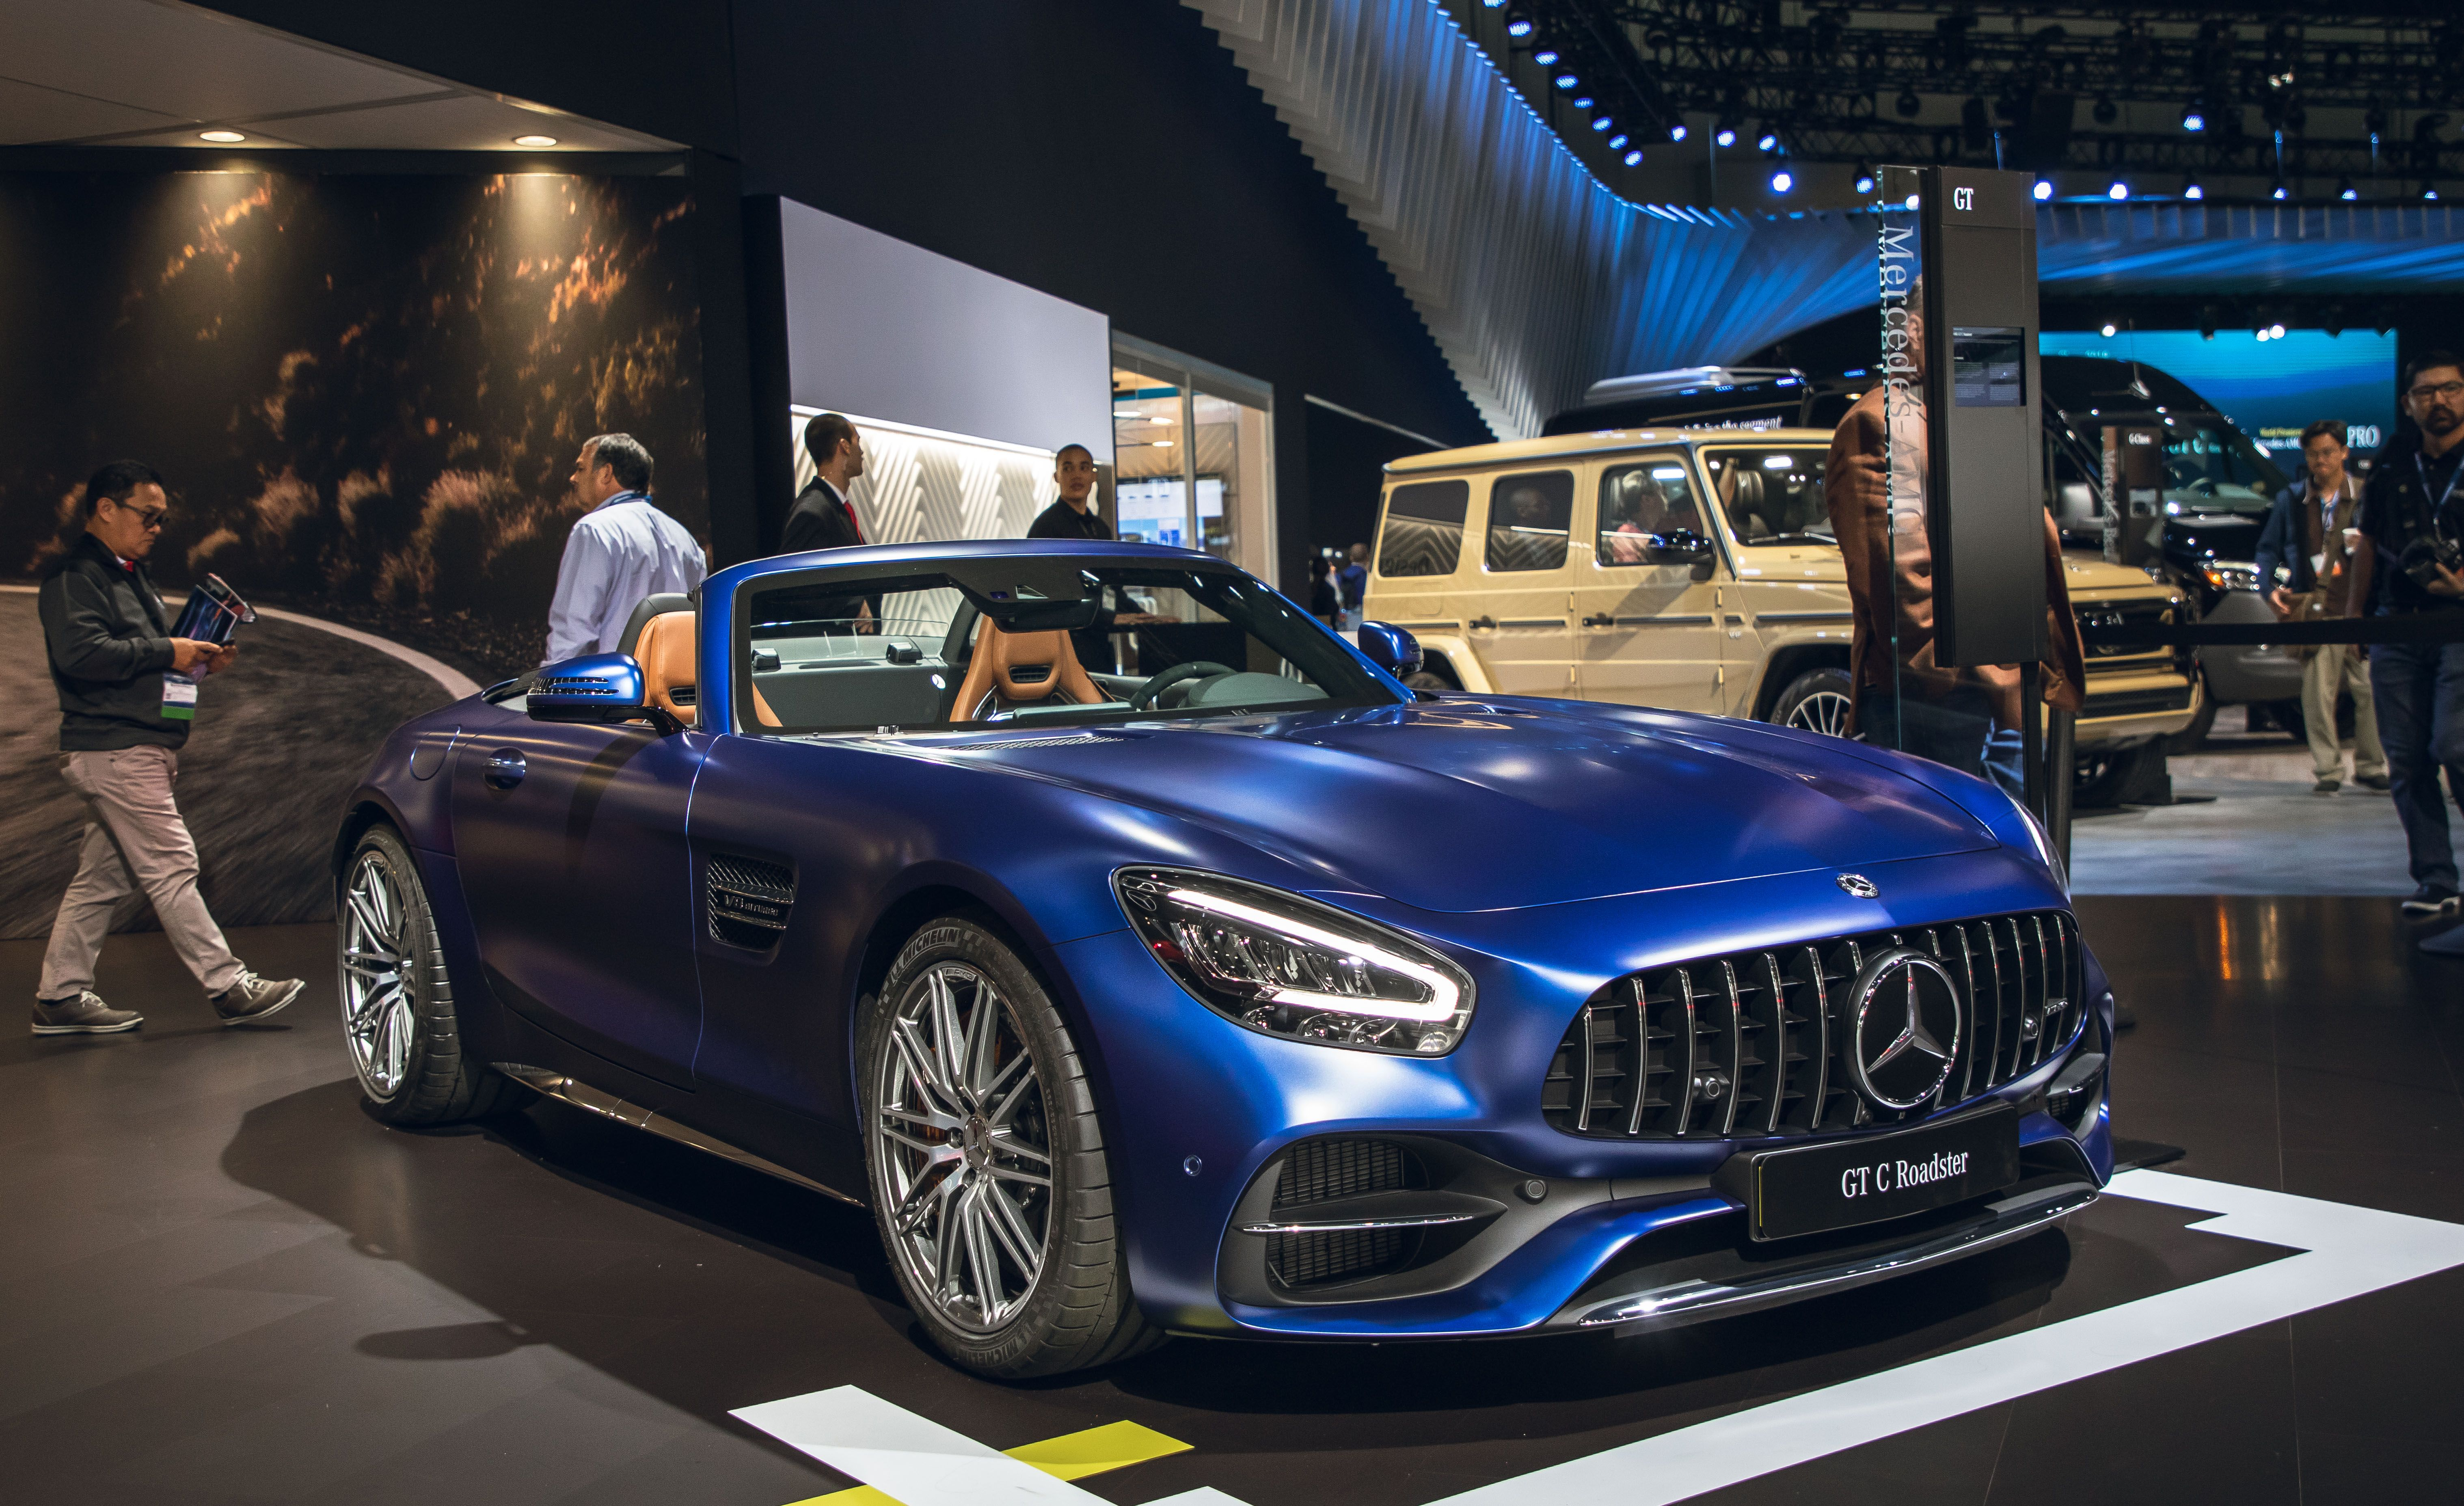 2020 Mercedes Amg Gt Coupe And Roadster Get Tech Performance Updates